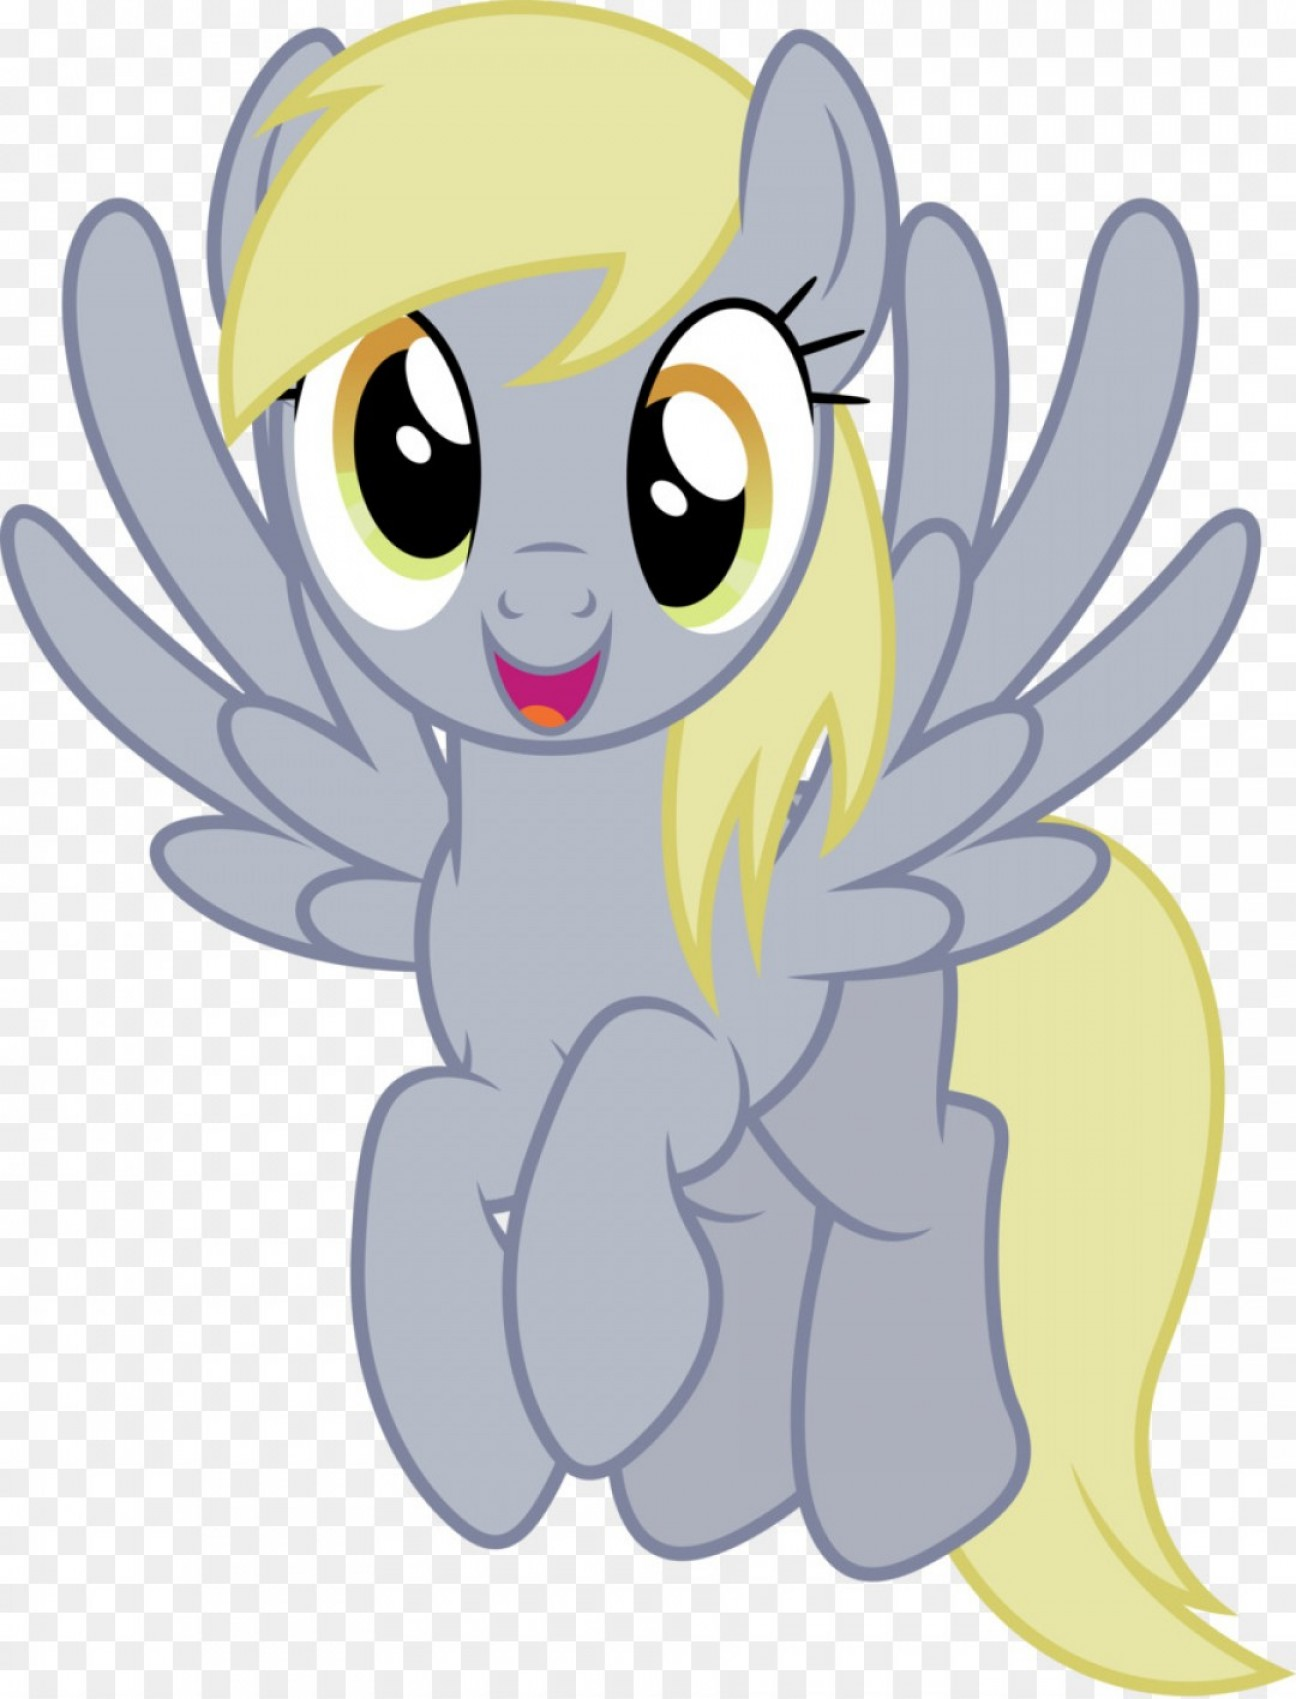 Derpy Hooves Vector: Png Pony Rainbow Dash Derpy Hooves Rarity Vector Pegas